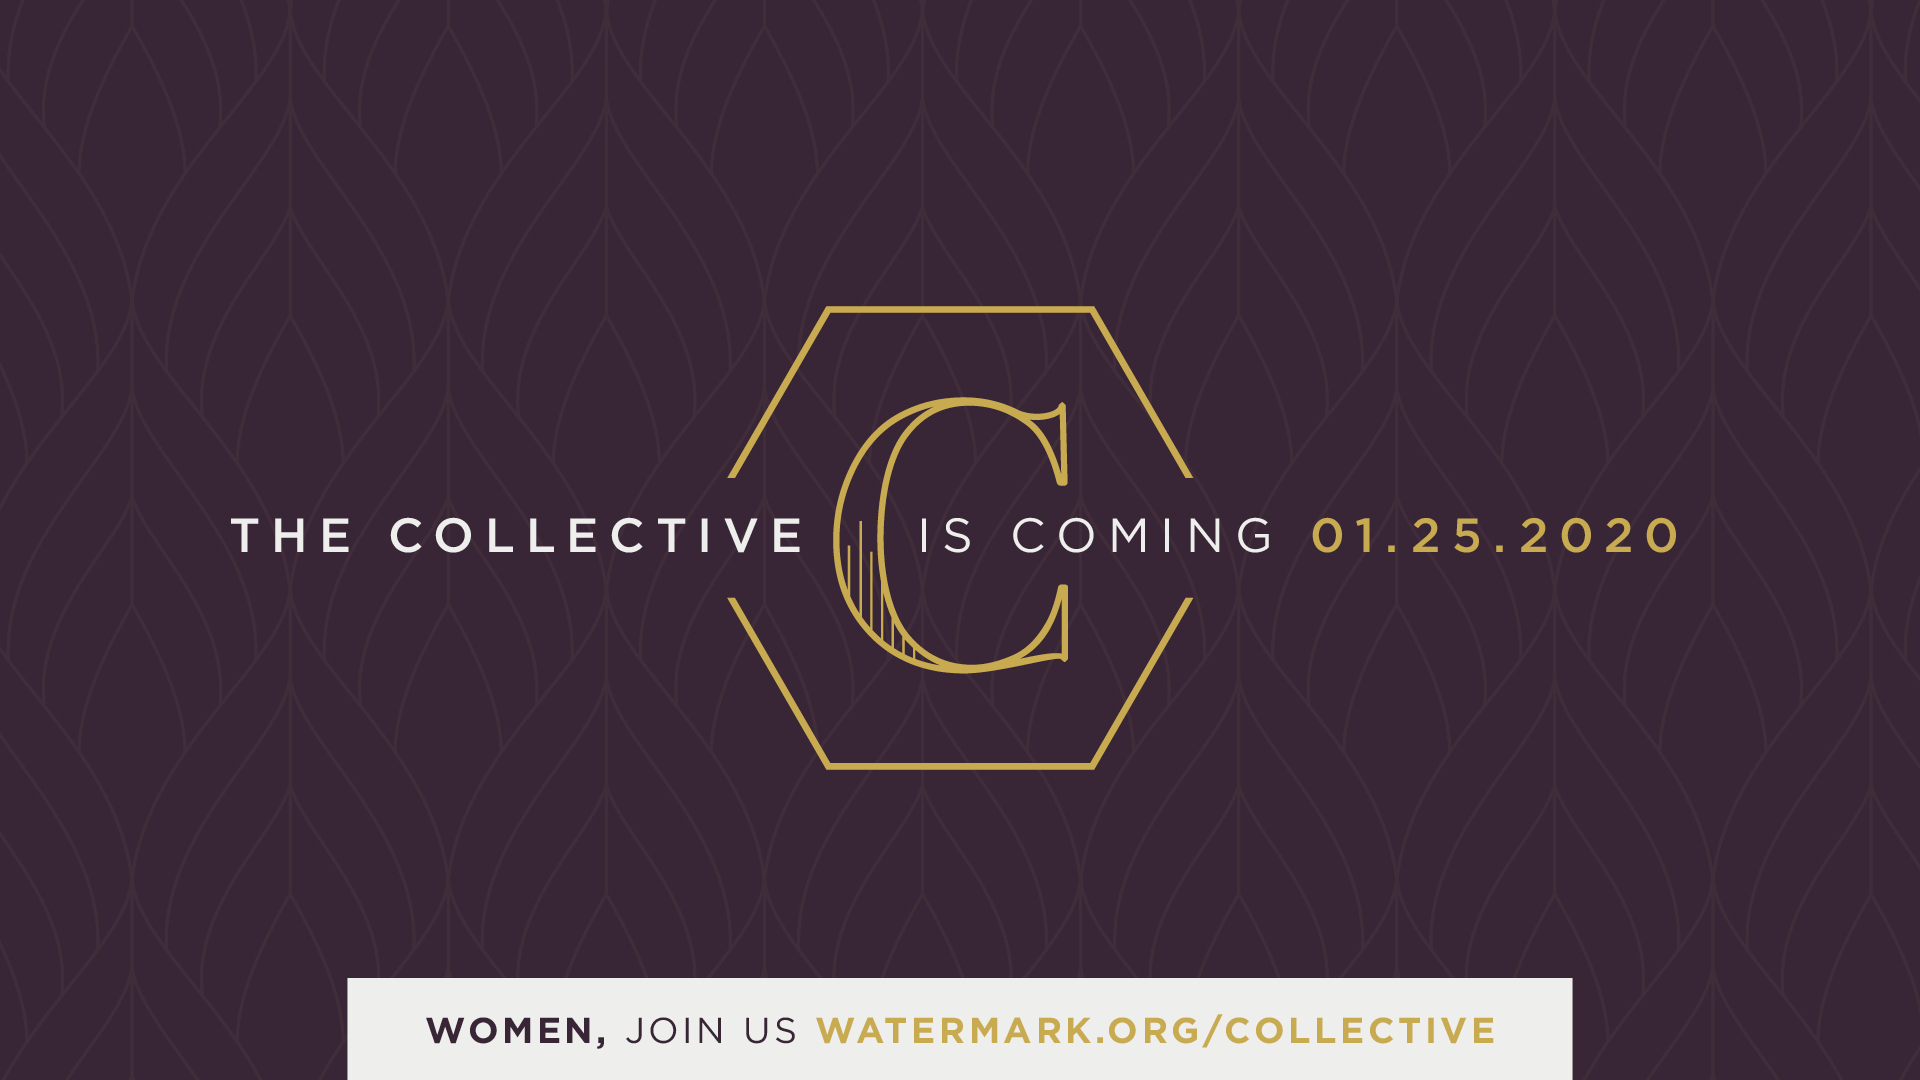 The Collective is Coming